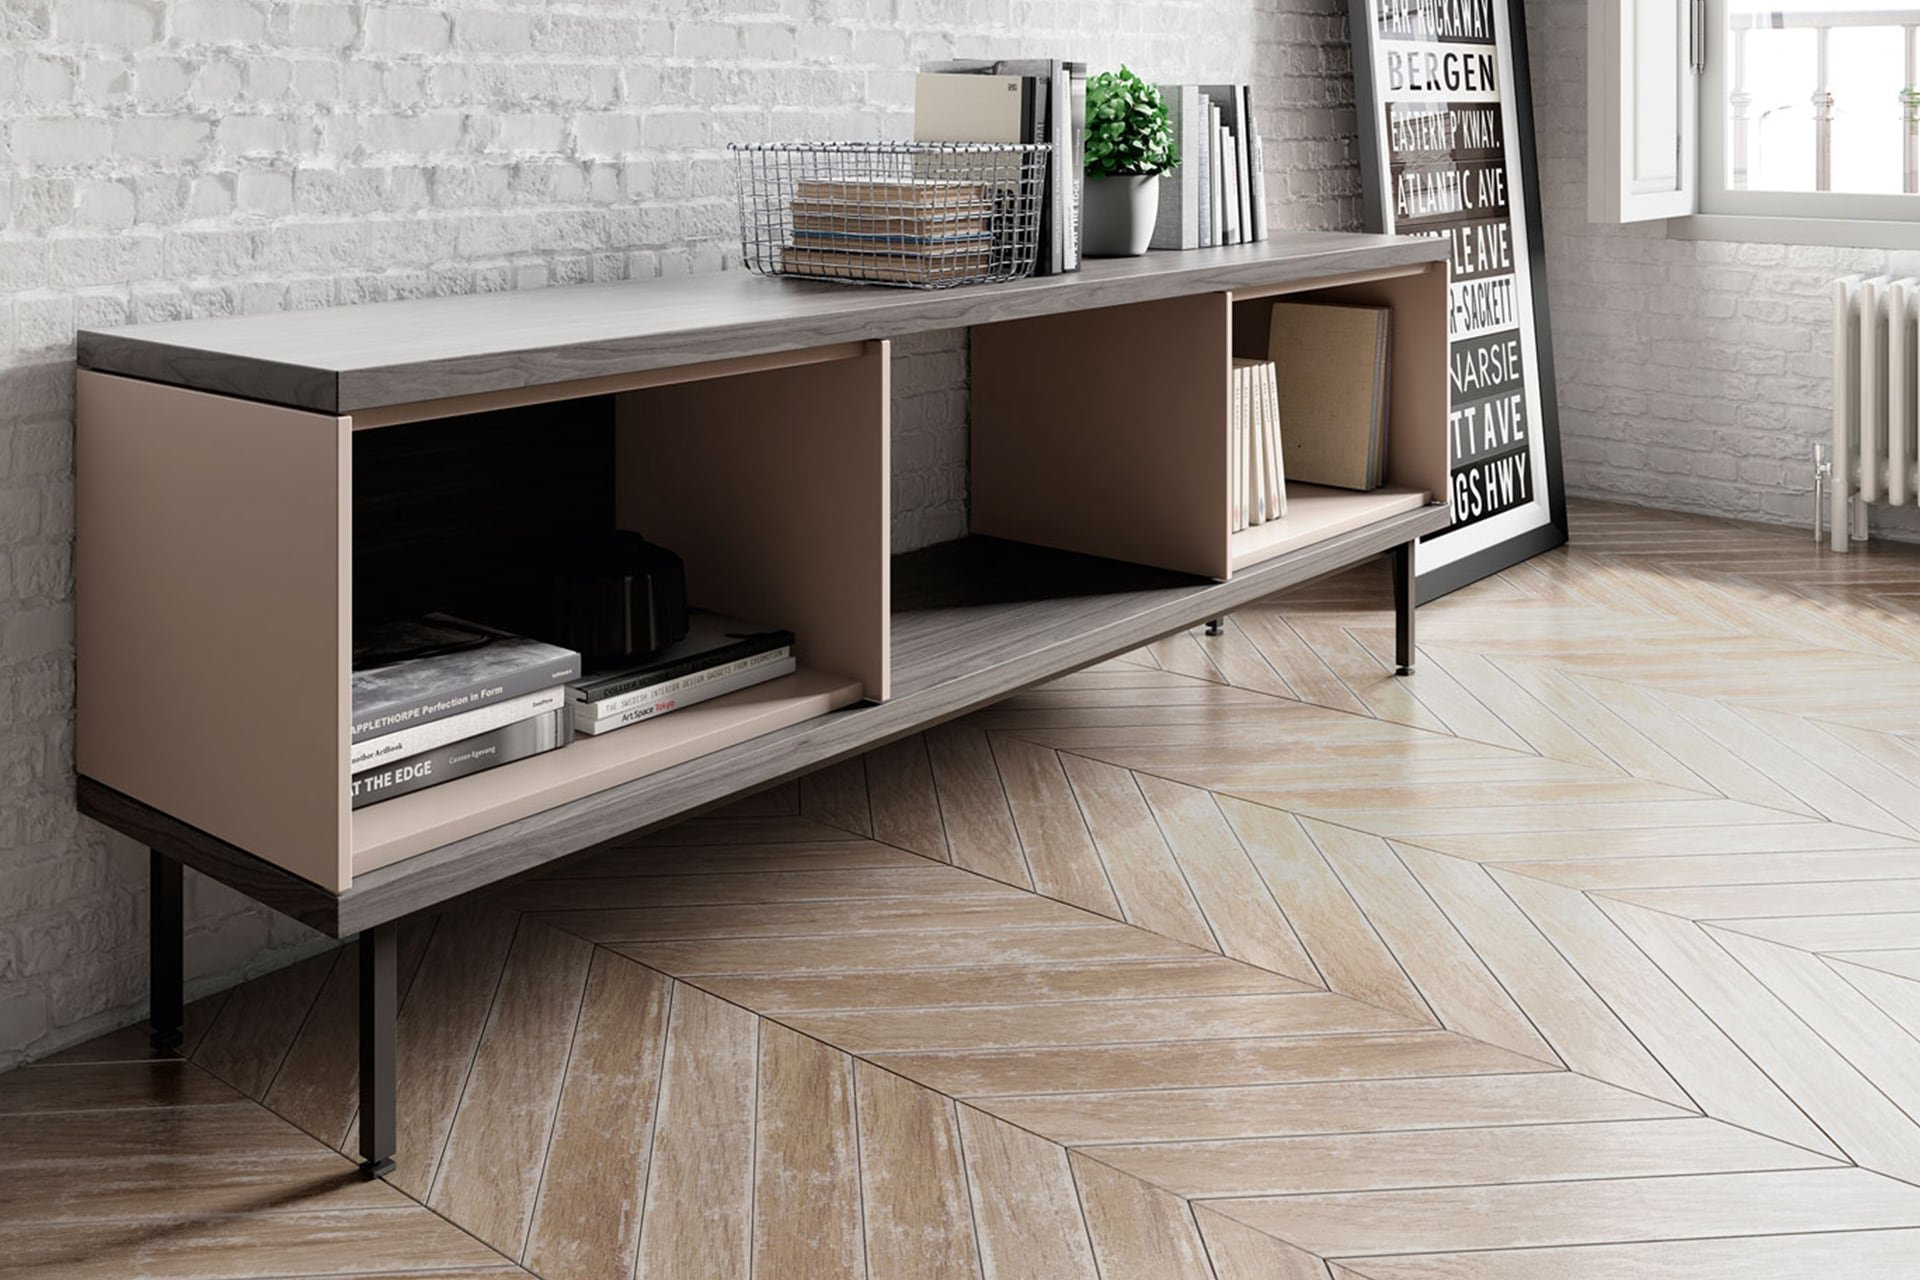 Slats Sideboard cabinet from Punt Mobles, designed by Marc Krusin